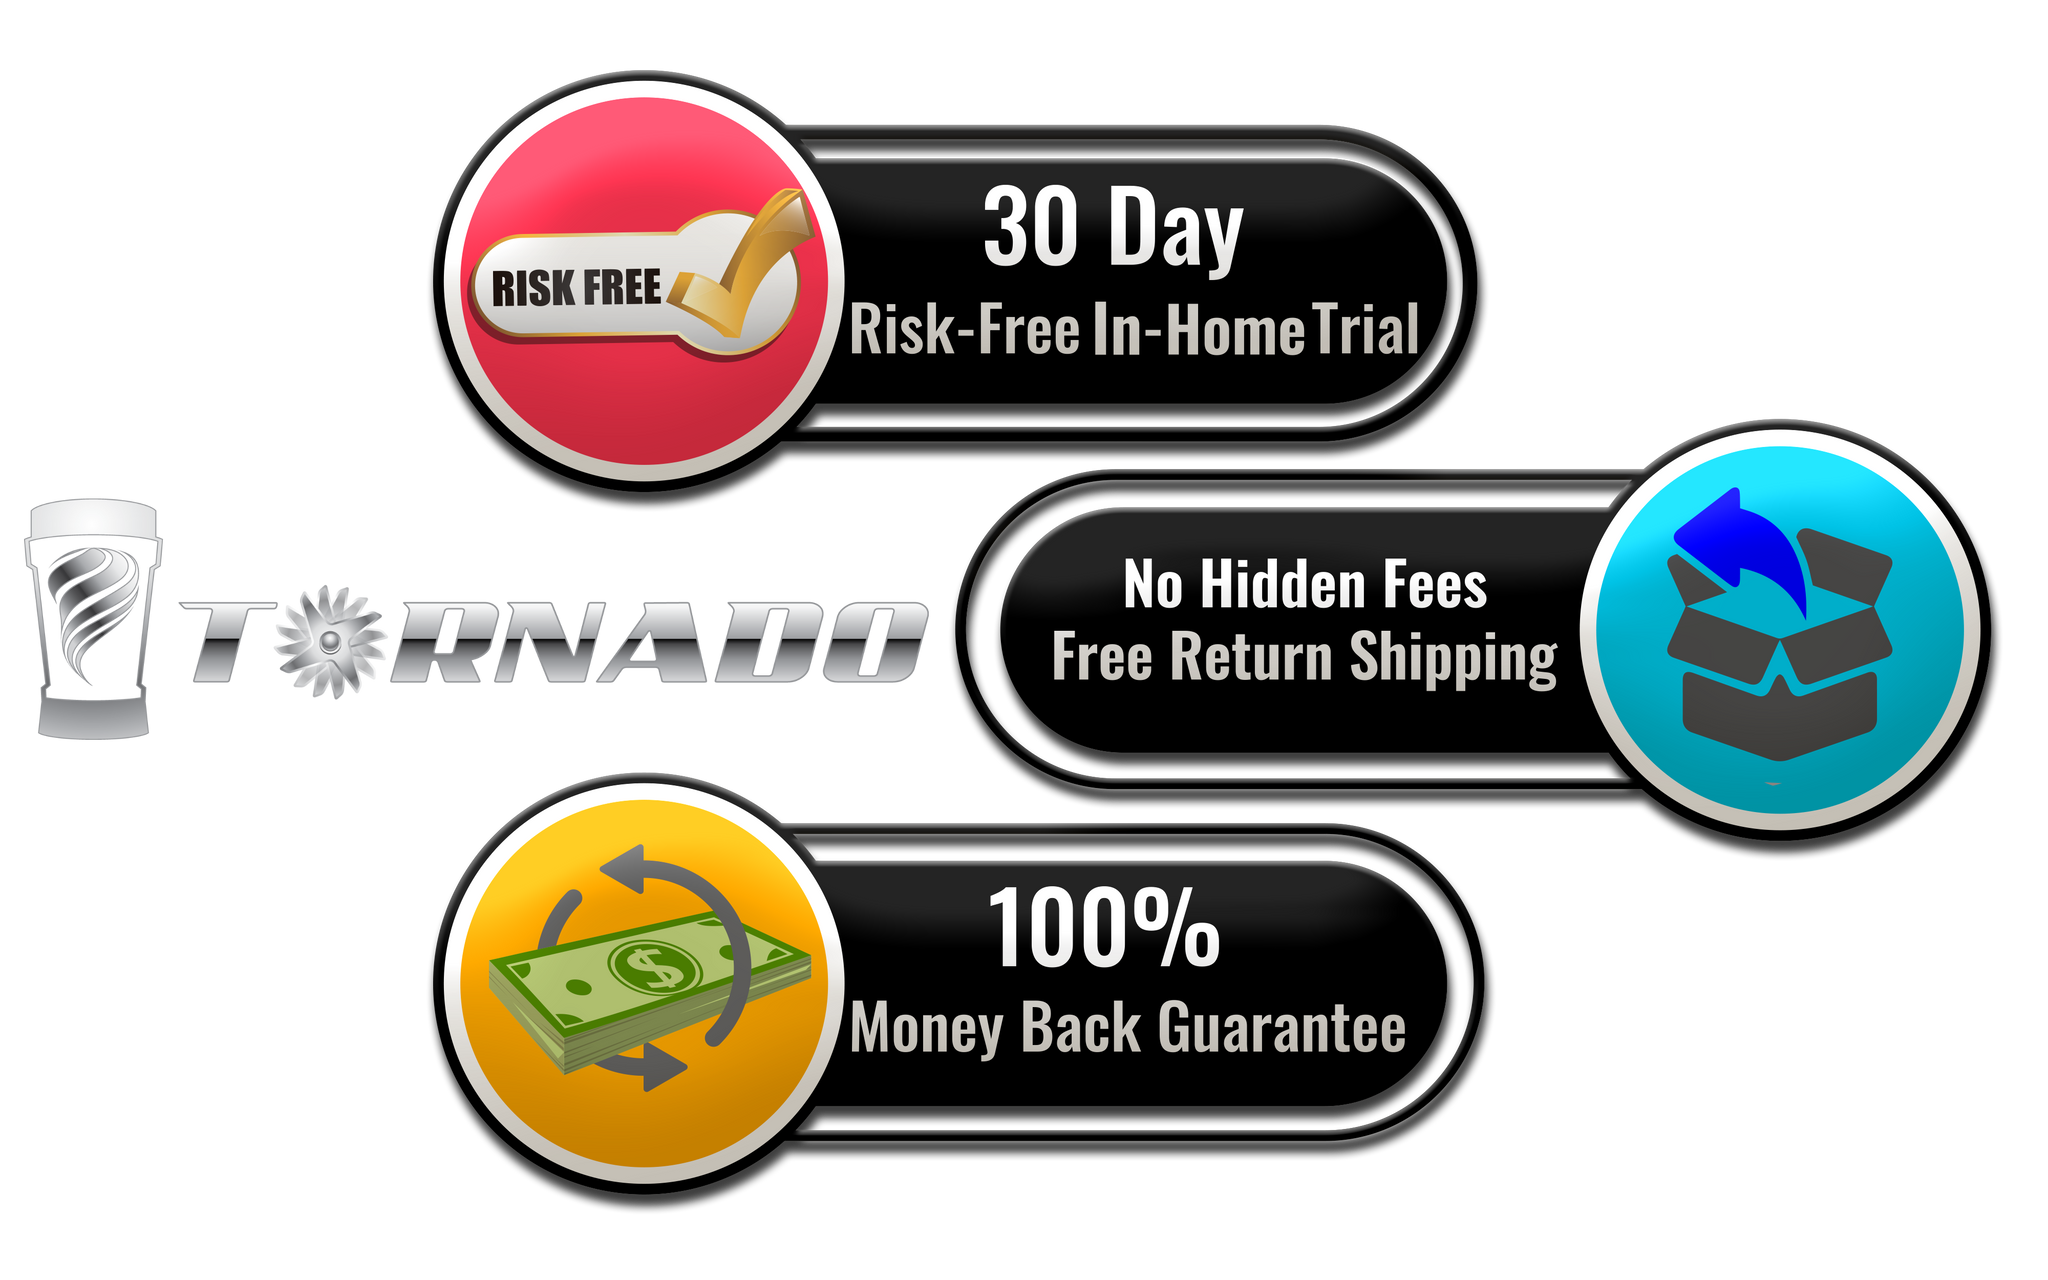 30 Day-Risk Free In-Home Trial - 100% Money Back Guarantee Tornado High-Performance Blender